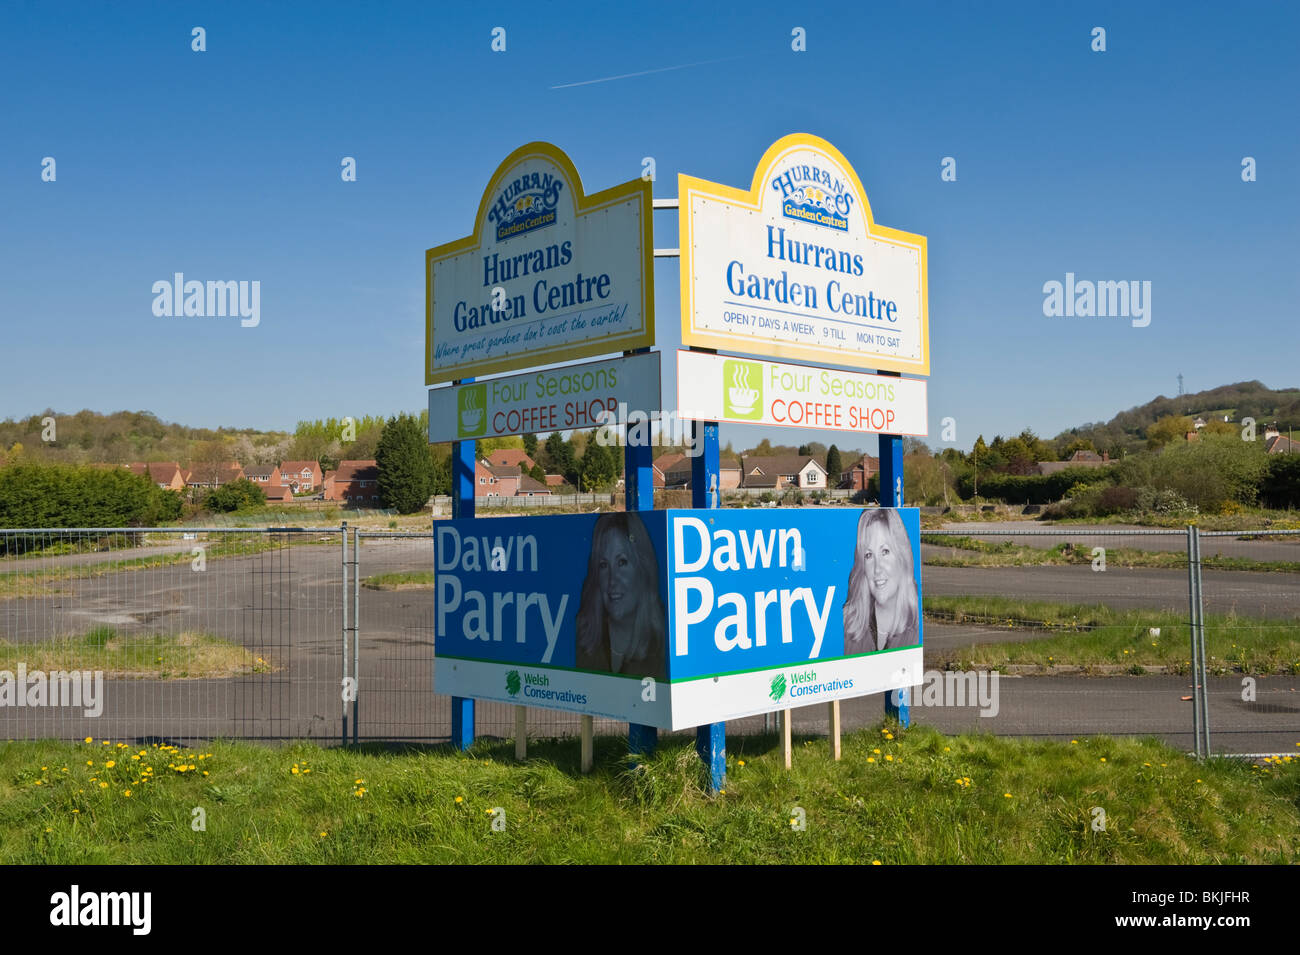 Dawn Parry Conservative Party candidate 2010 General Election poster in Newport East constituency South Wales UK - Stock Image